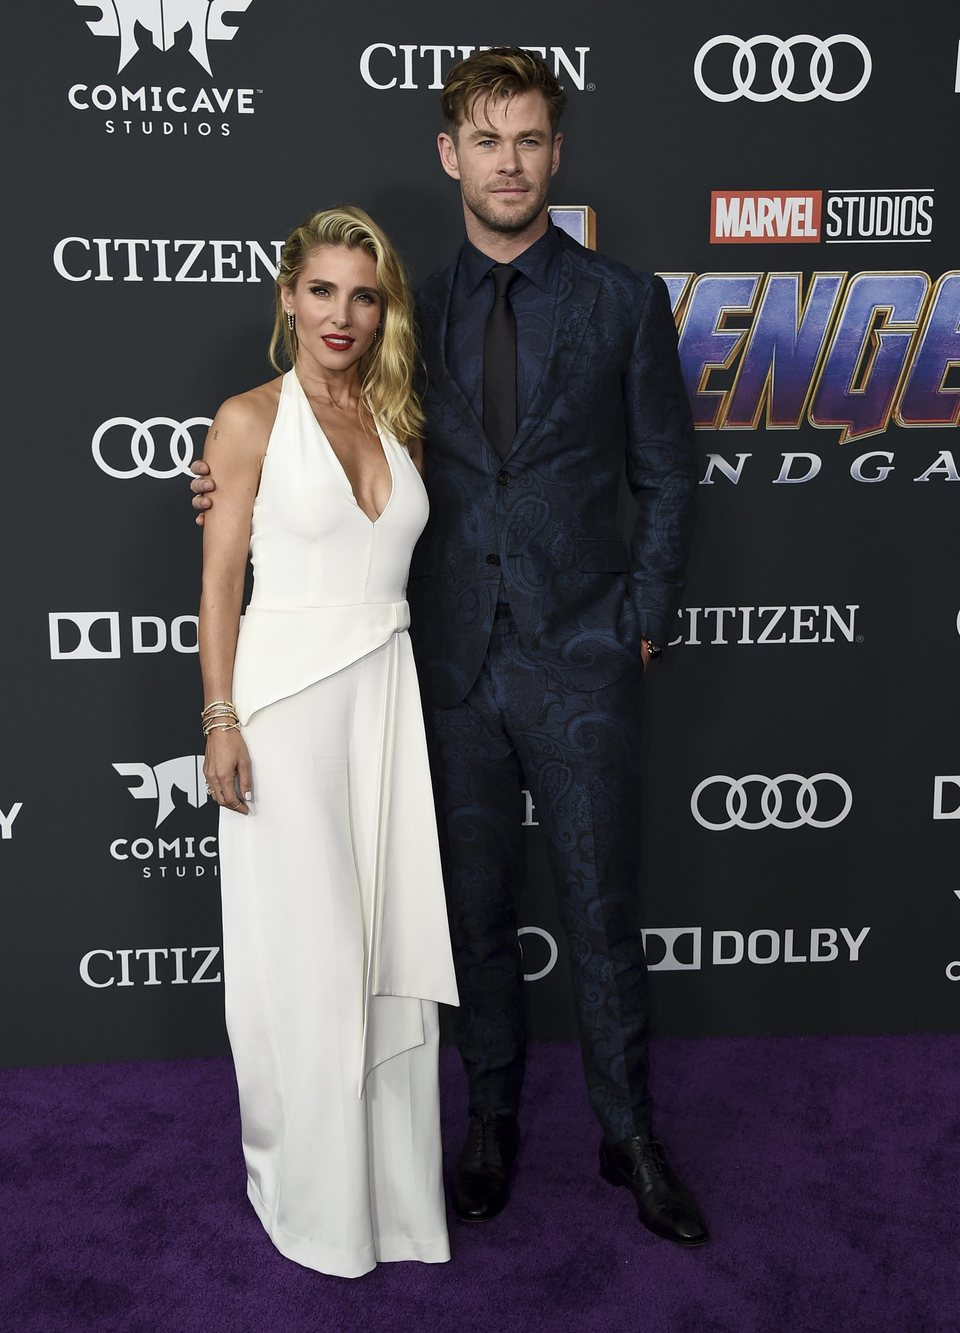 Chris Hemsworth and Elsa Pataky on the red carpet of 'Avengers: Endgame'